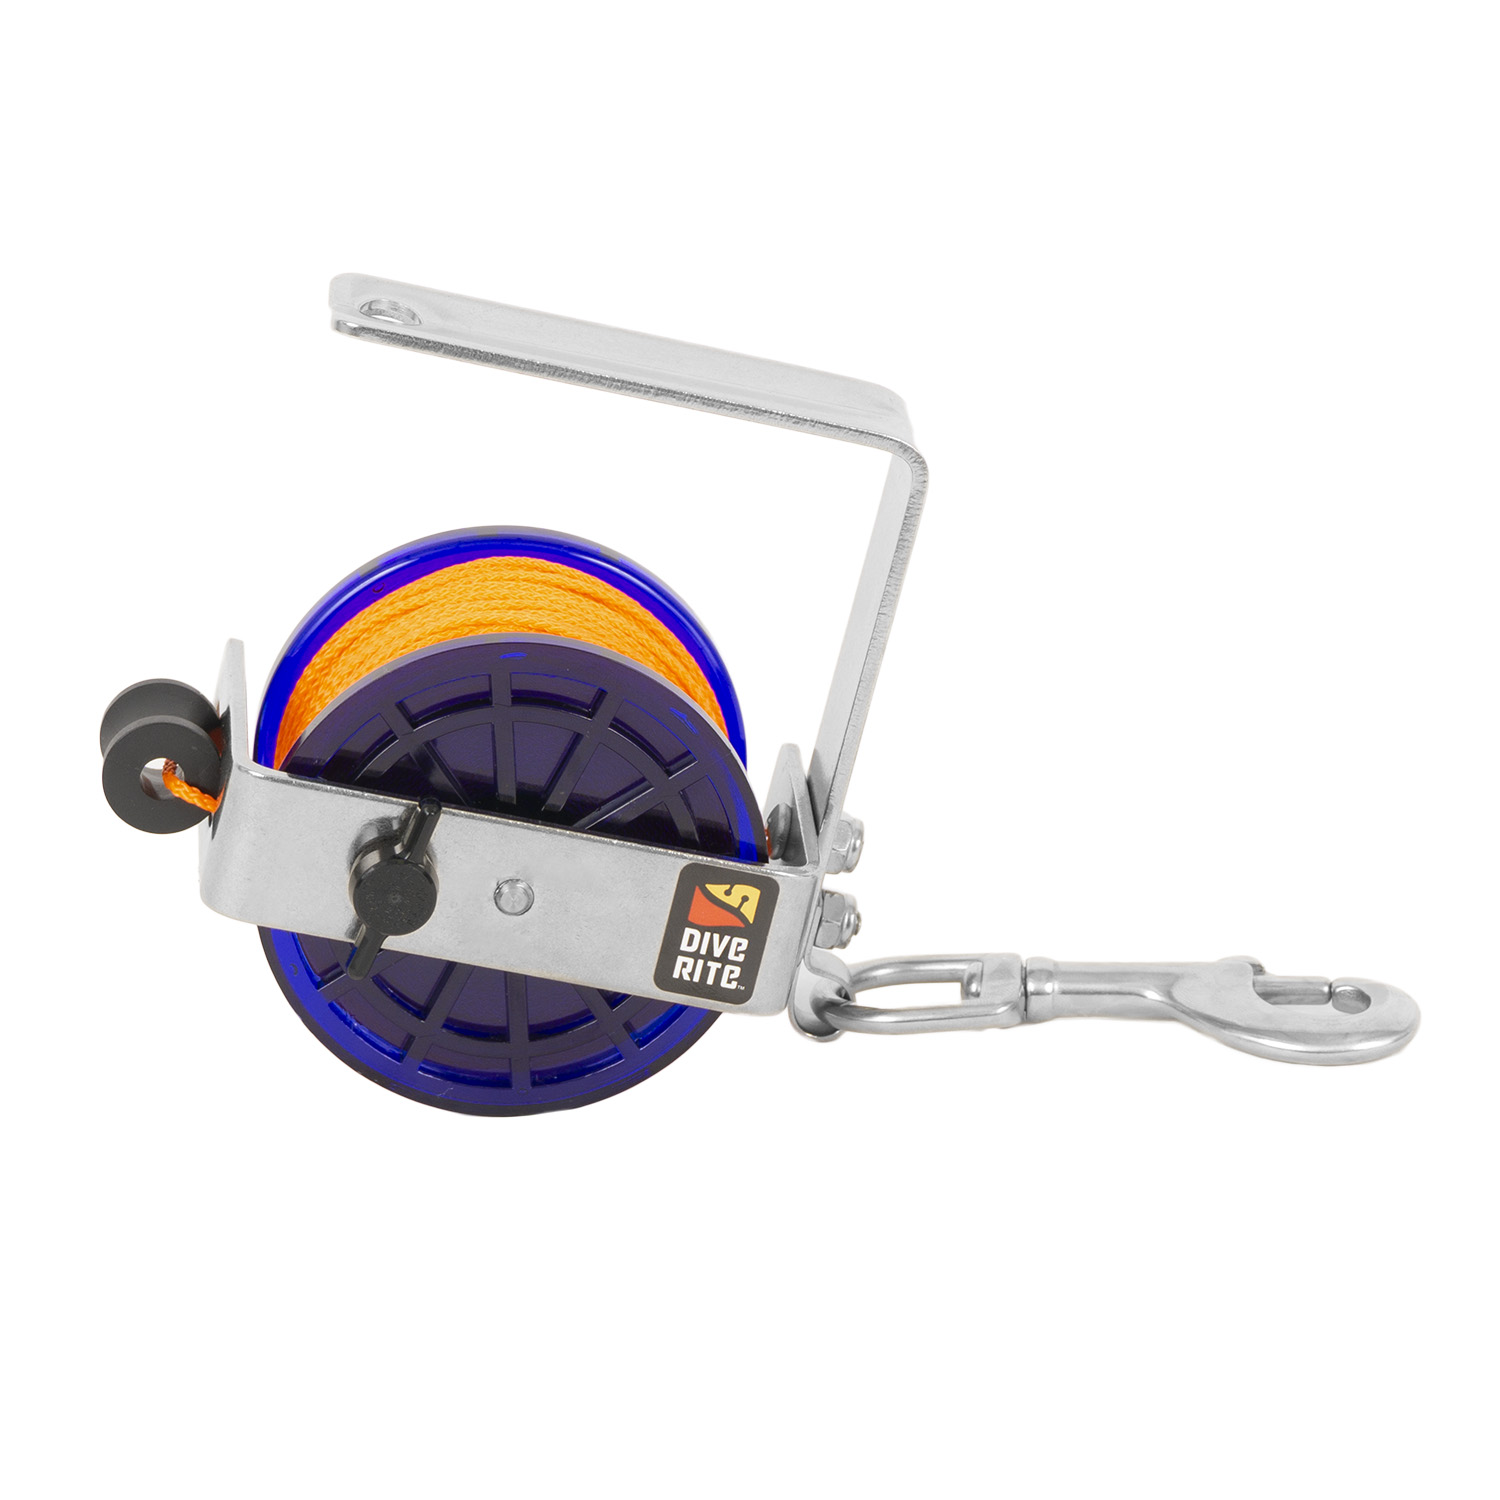 DIVE RITE Classic 140ft Line Safety/Cavern Reel